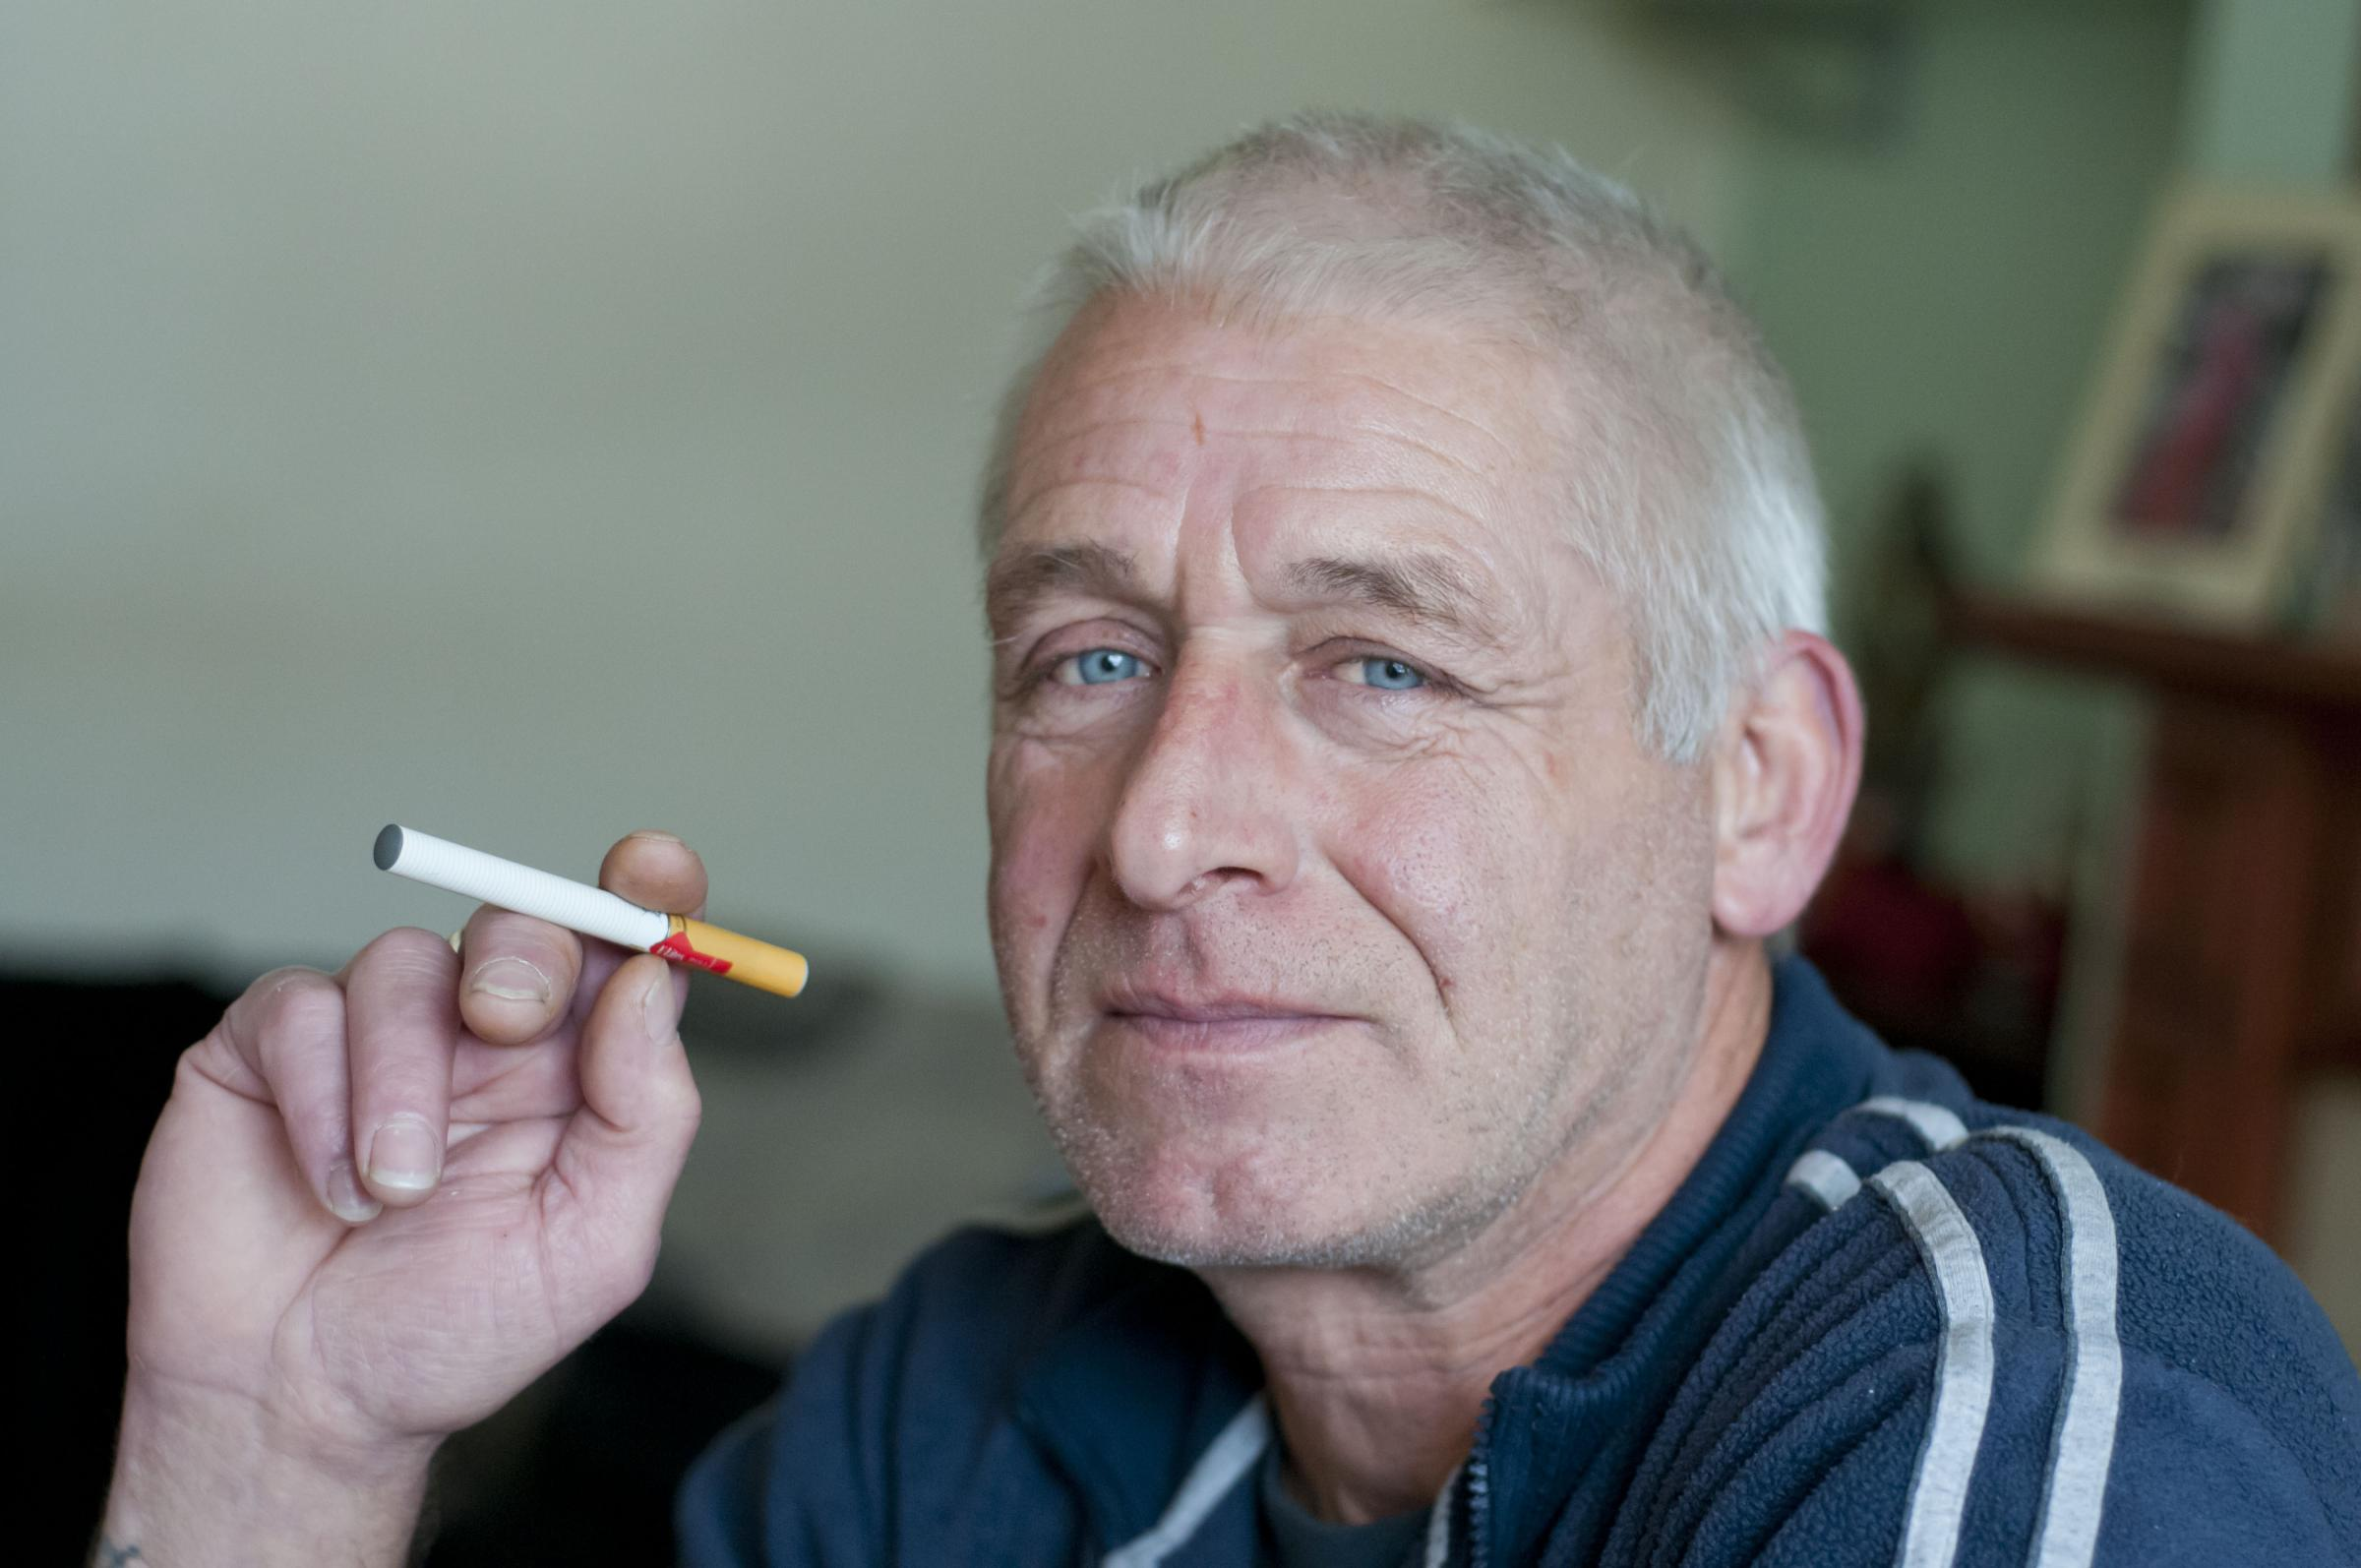 Electronic cigarette row sparks strike threat